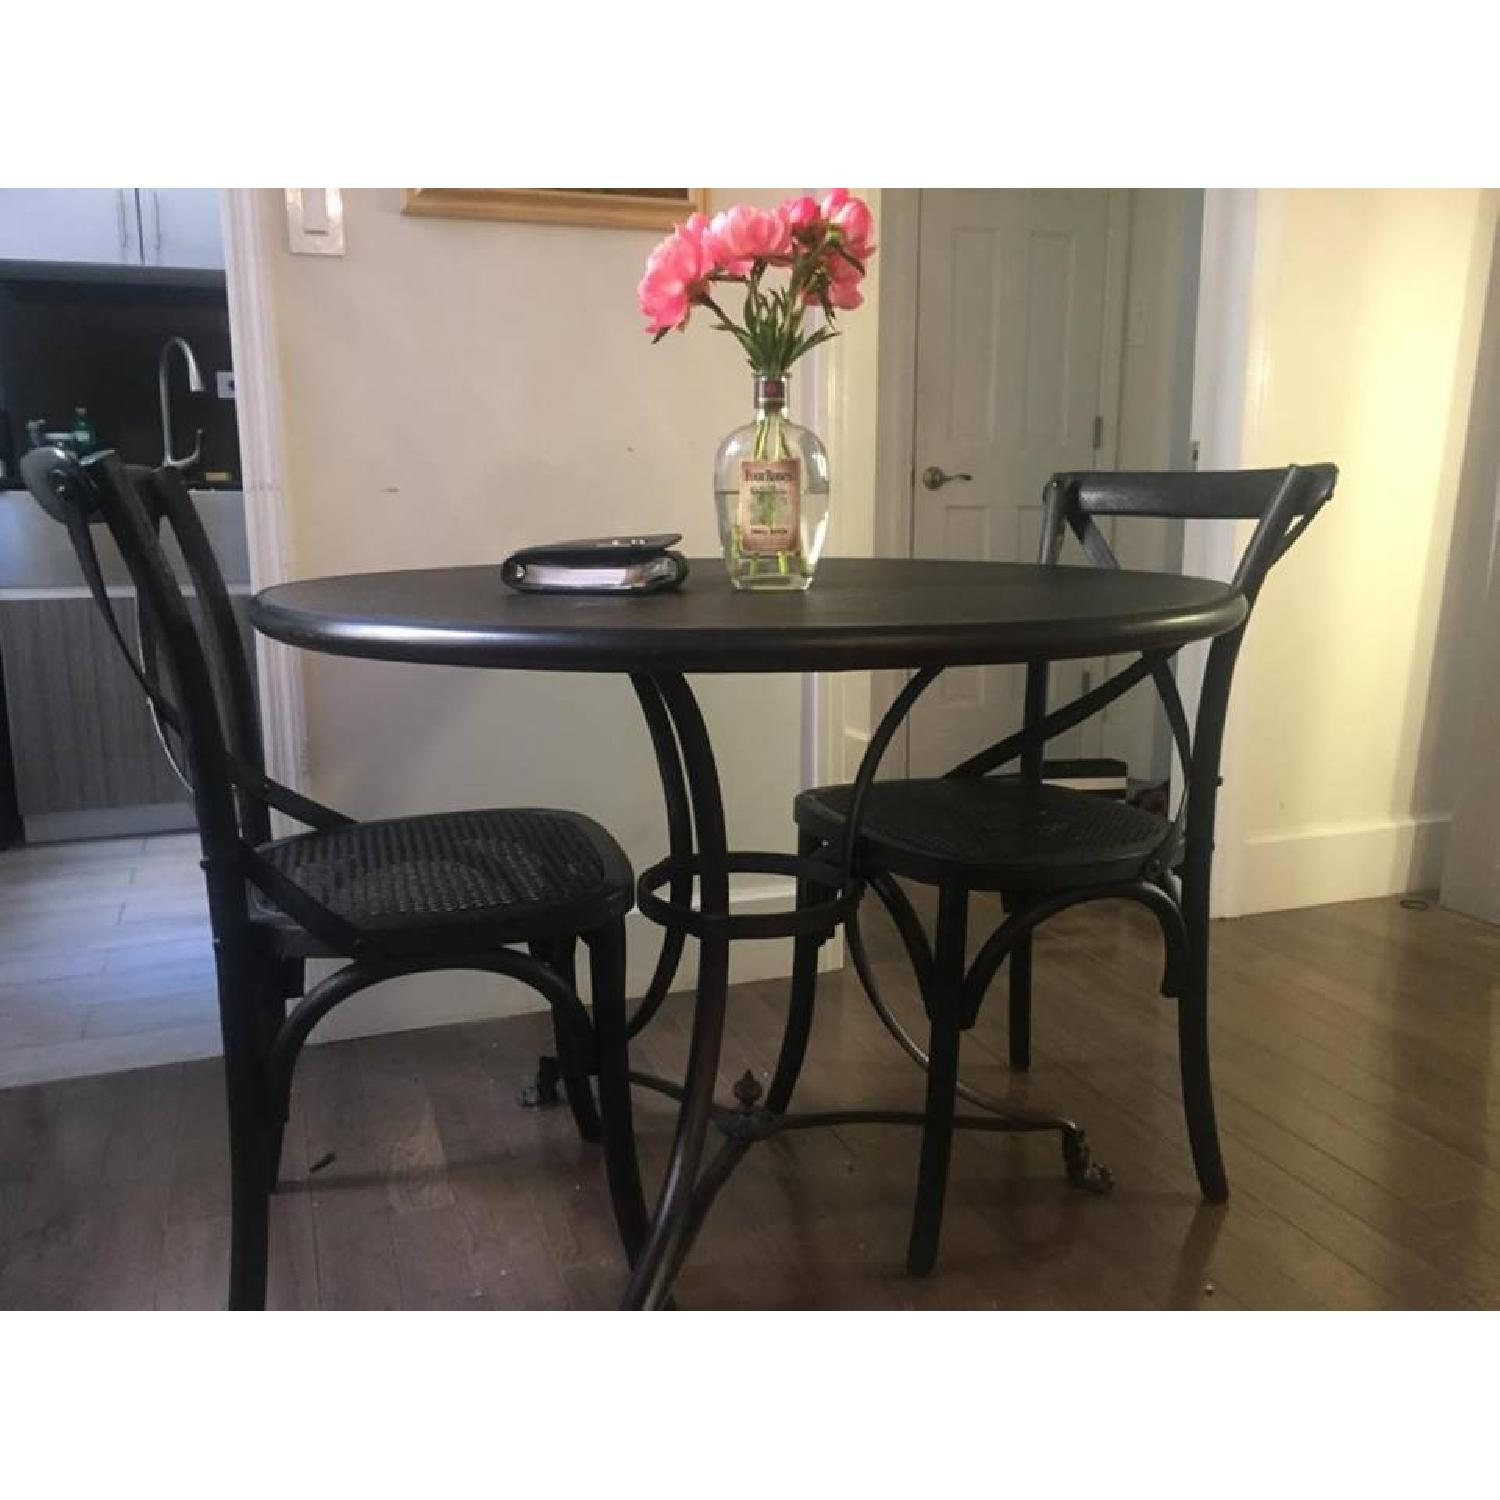 Restoration Hardware 19th C. French Lion's Foot Brasserie Table w/ 2 Chairs - image-1